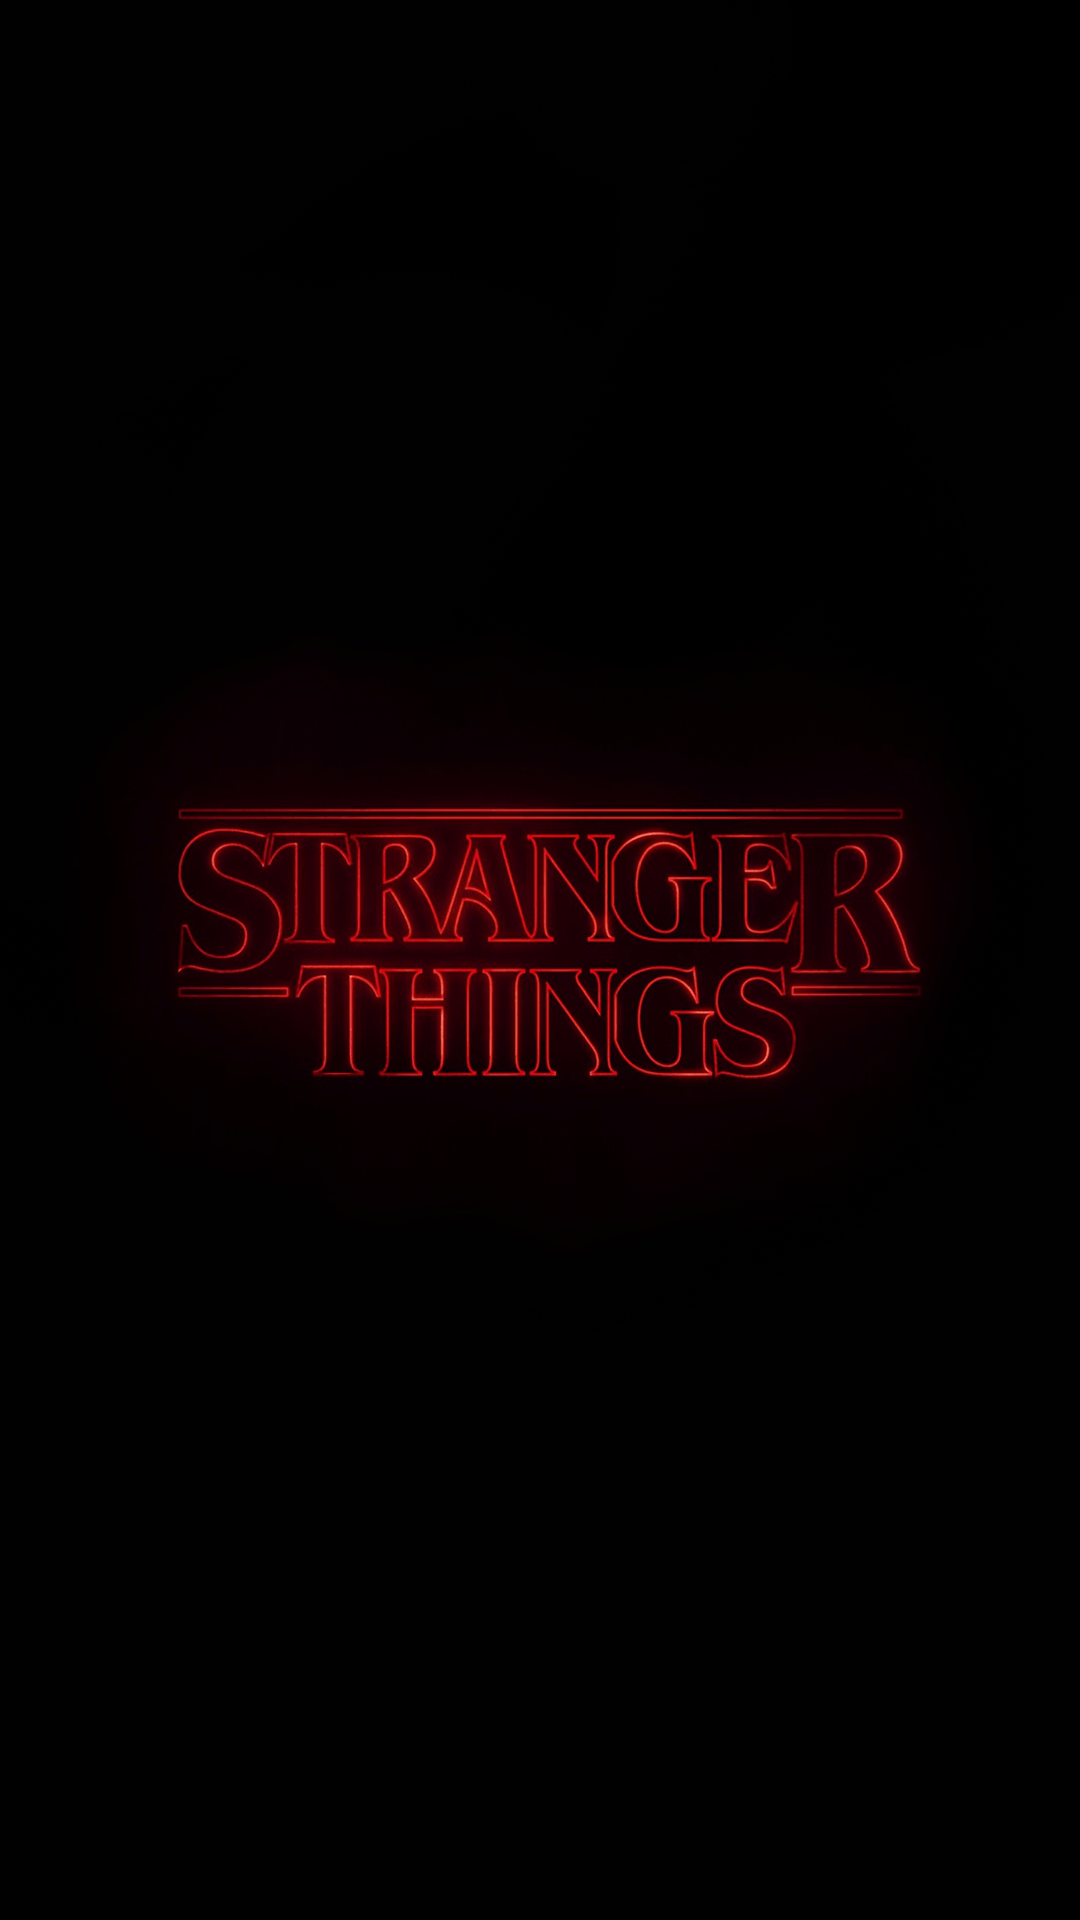 Stranger Things Wallpapers 1080x1920